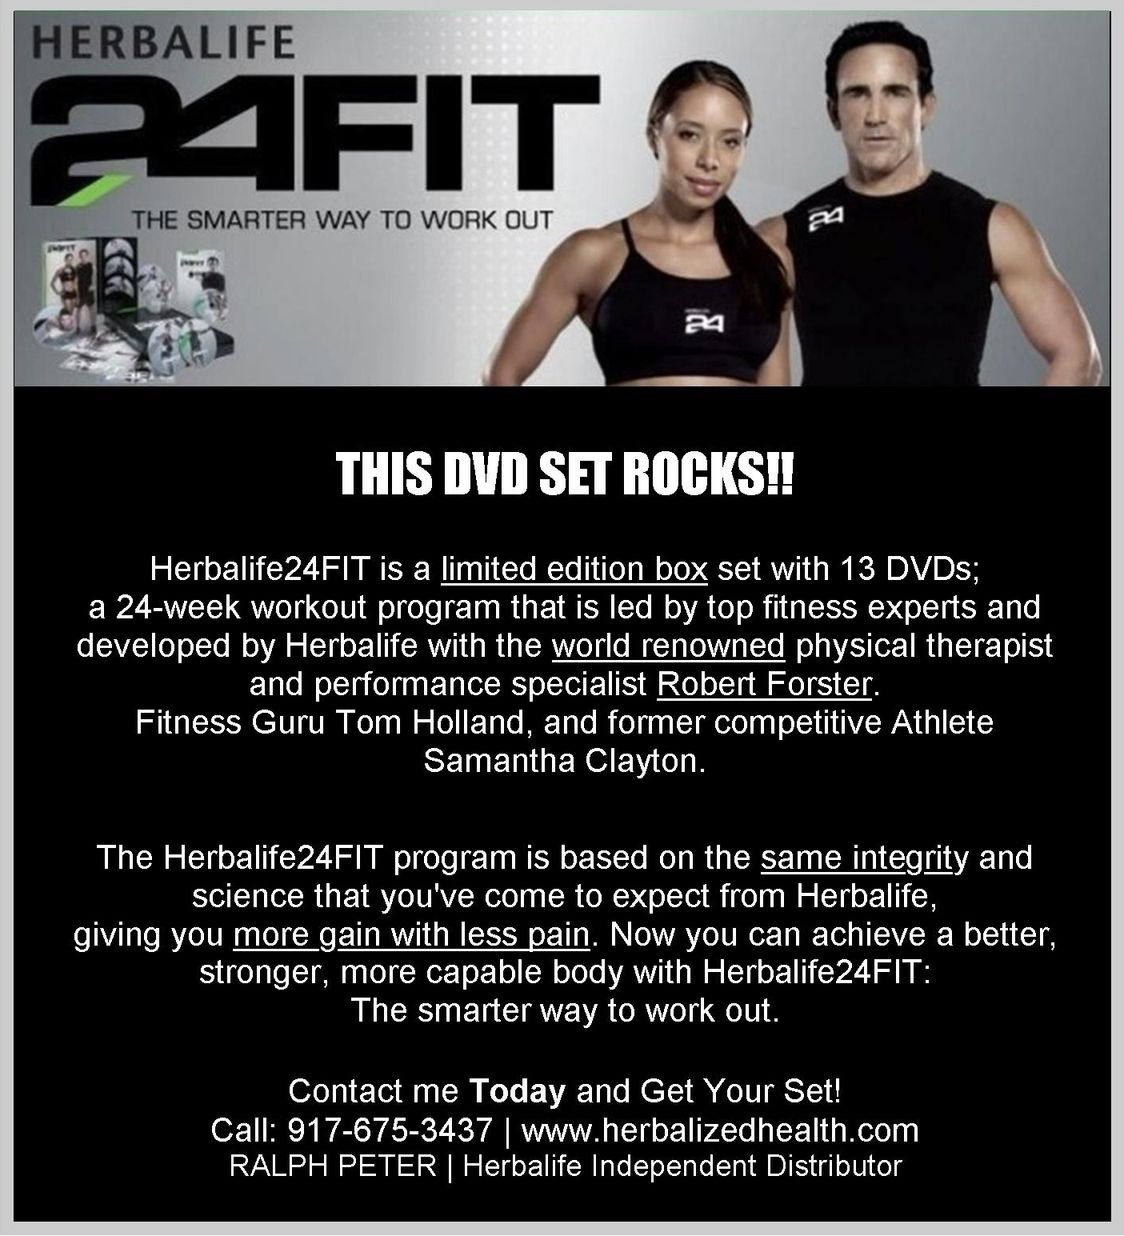 13 Workout DVDs You Can Get for Cheap on Black Friday 13 Workout DVDs You Can Get for Cheap on Black Friday new photo